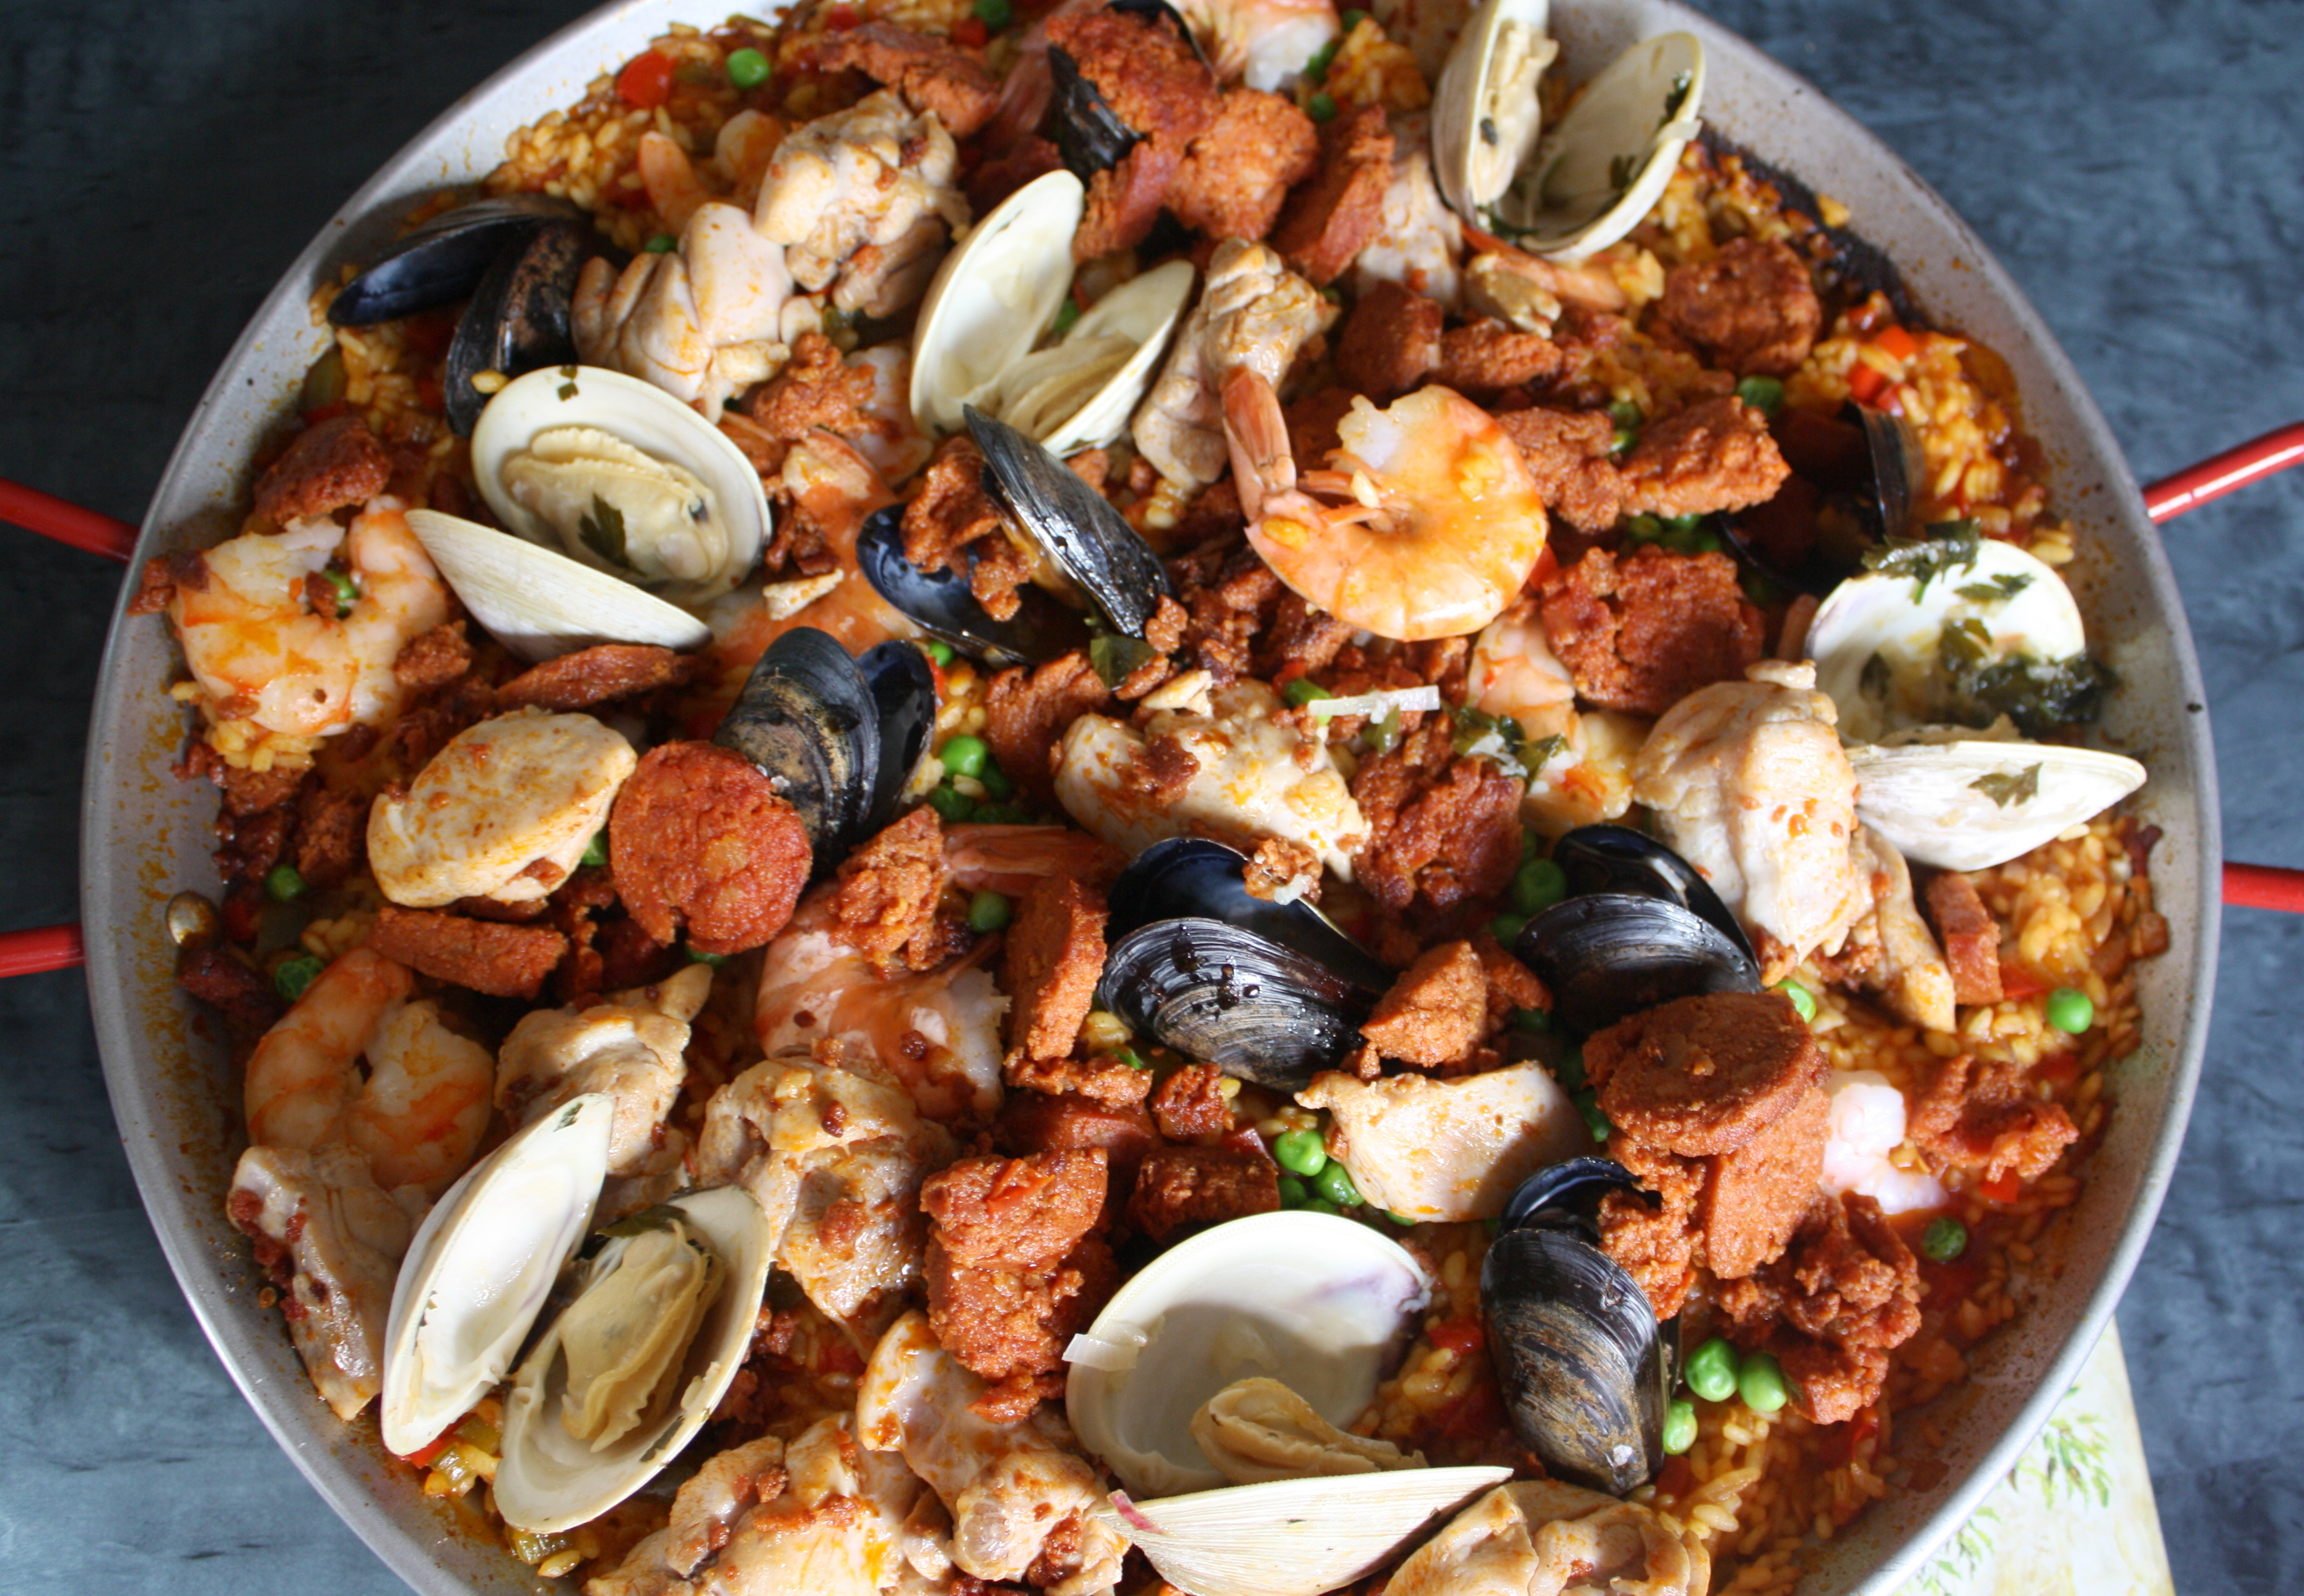 Paella with Chicken, Chorizo, Shrimp, Mussels and Clams